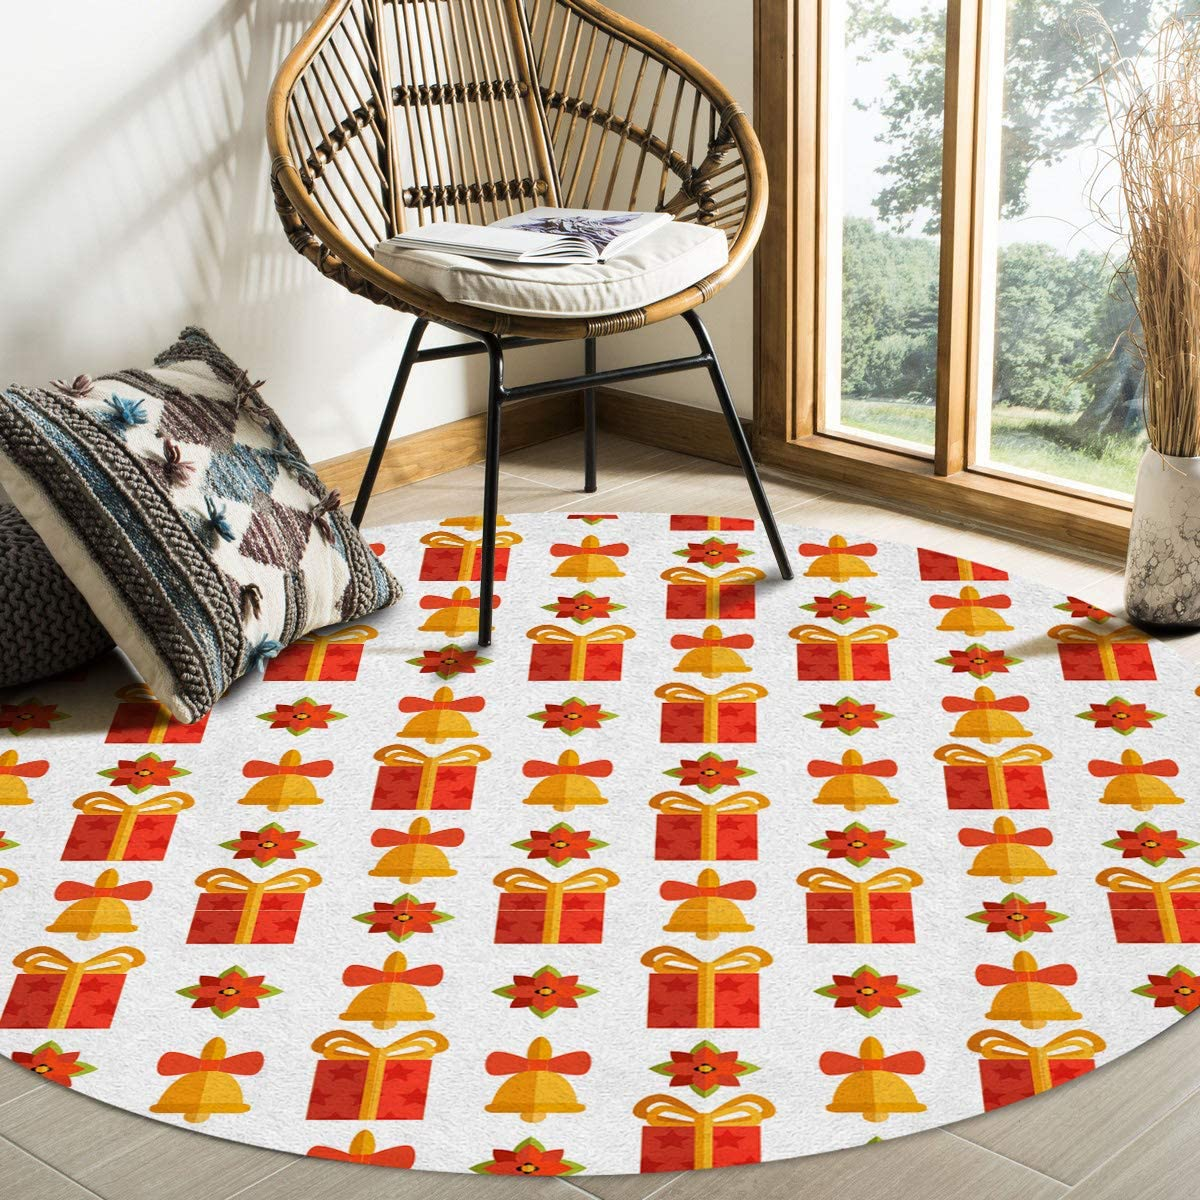 Max 53% Spring new work OFF Modern Round Area Rug 5 Feet for Low-Profi Bedroom Non-Shedding